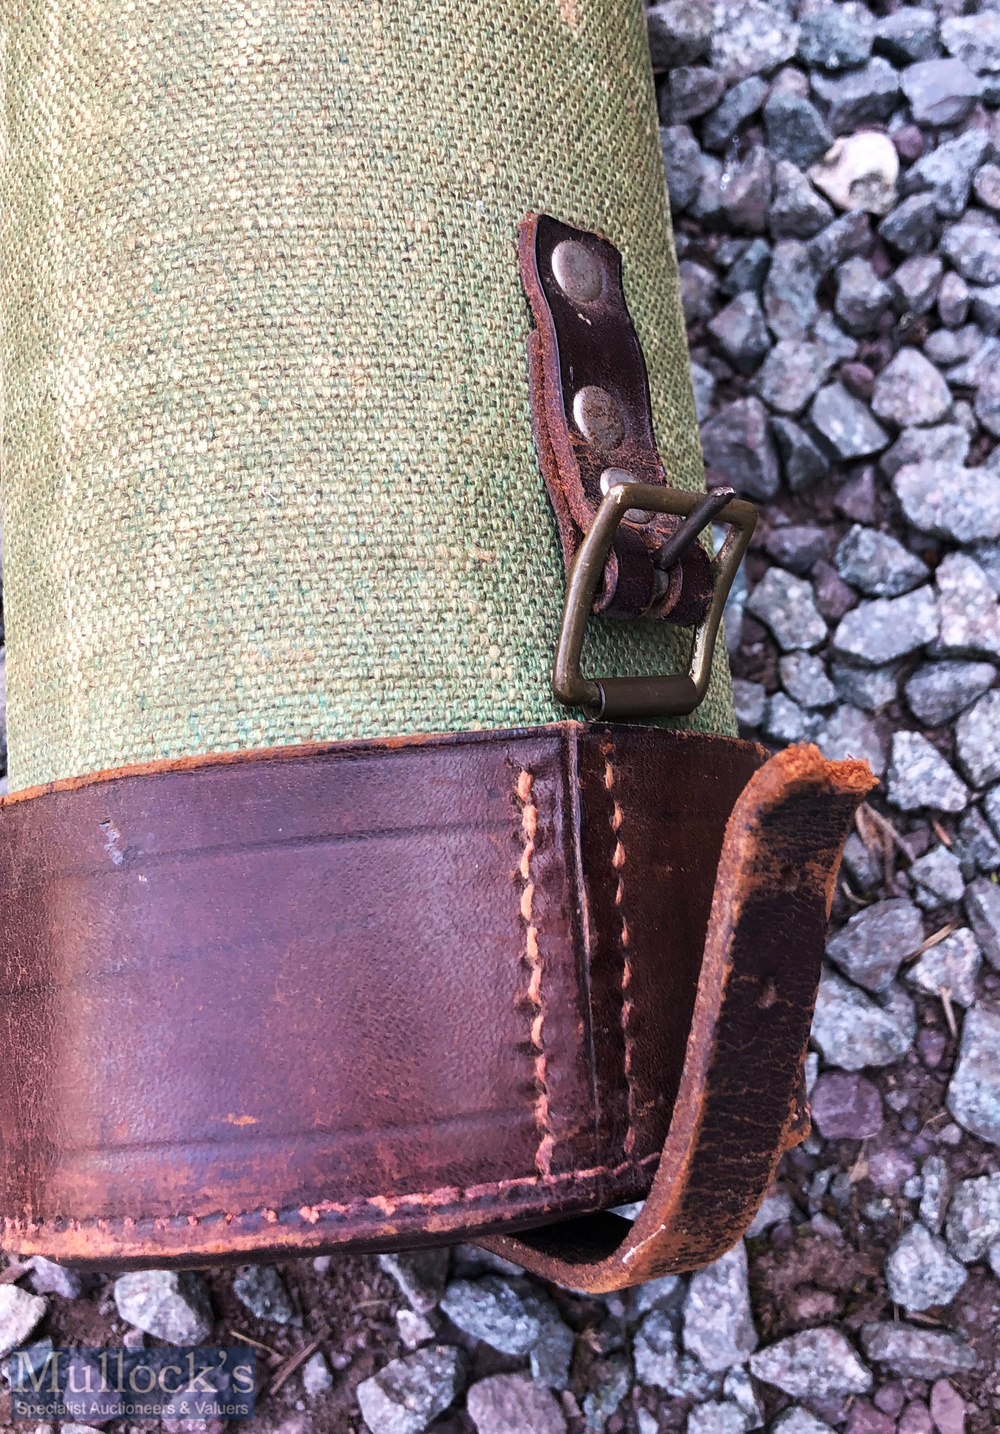 Canvas and leather rod carrying tube 60ins x 3 1/2ins, adjustable leather handle, leather cap and - Image 2 of 2